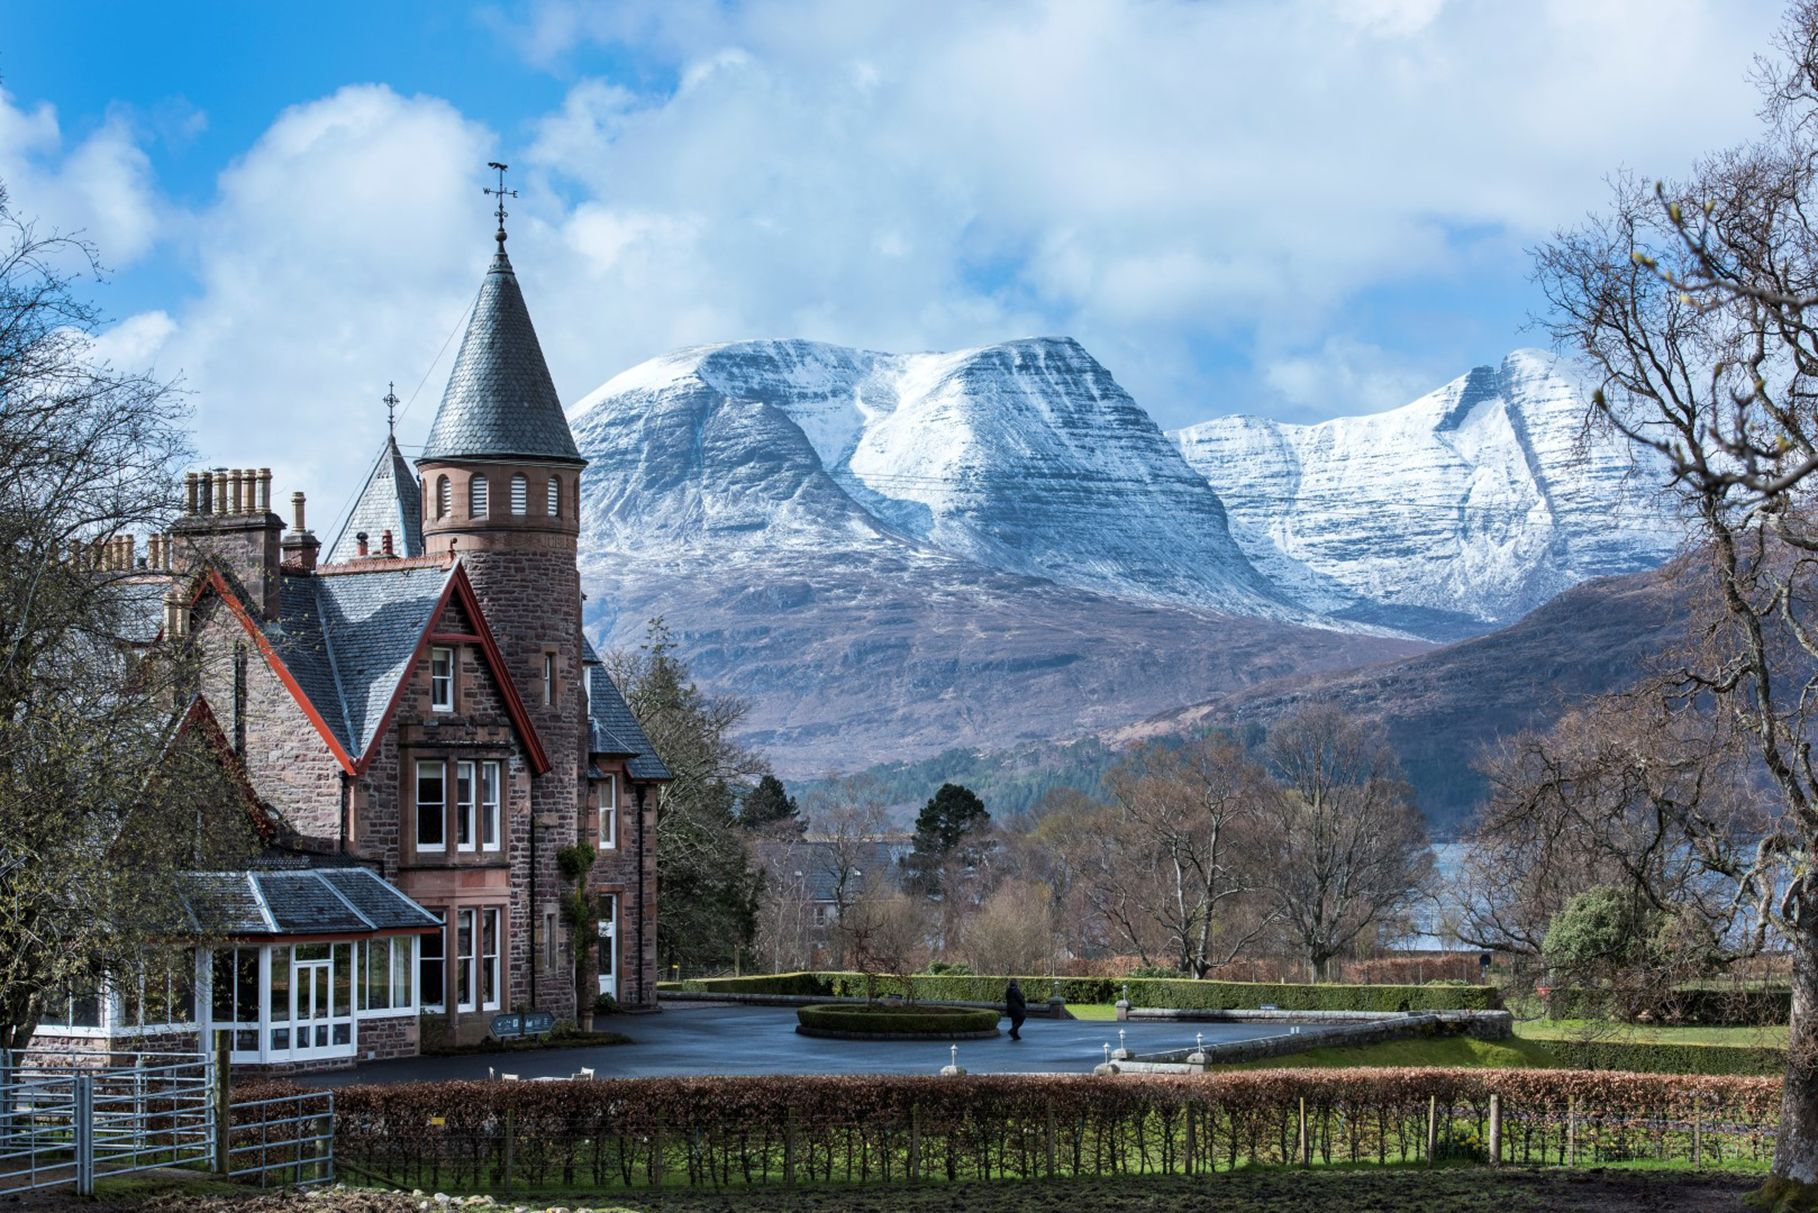 Best hotels in the UK: 16 hotels to visit before you die